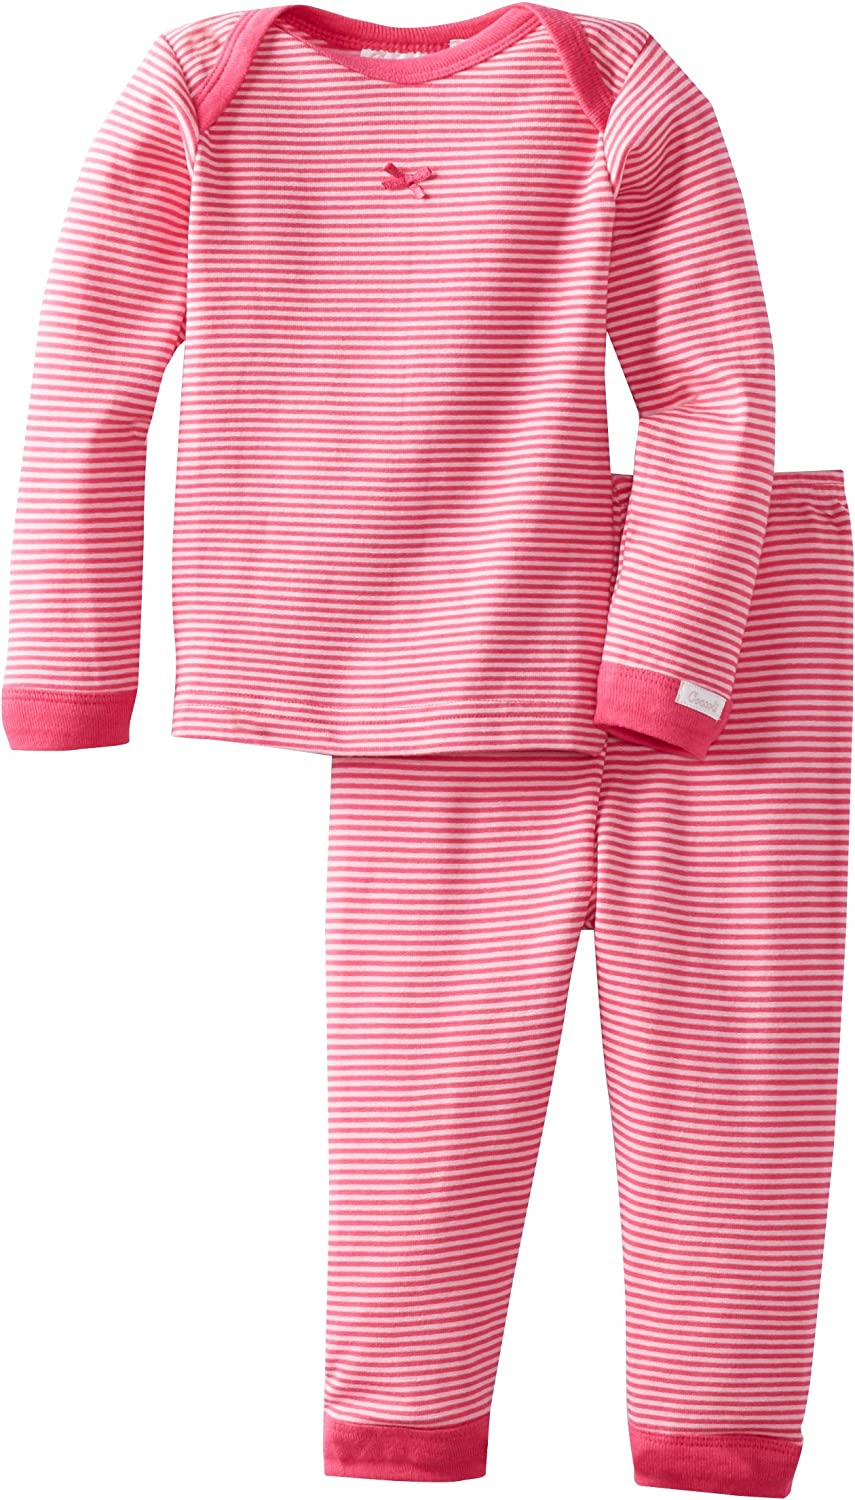 Coccoli Baby 2 Piece Pant and Top Set